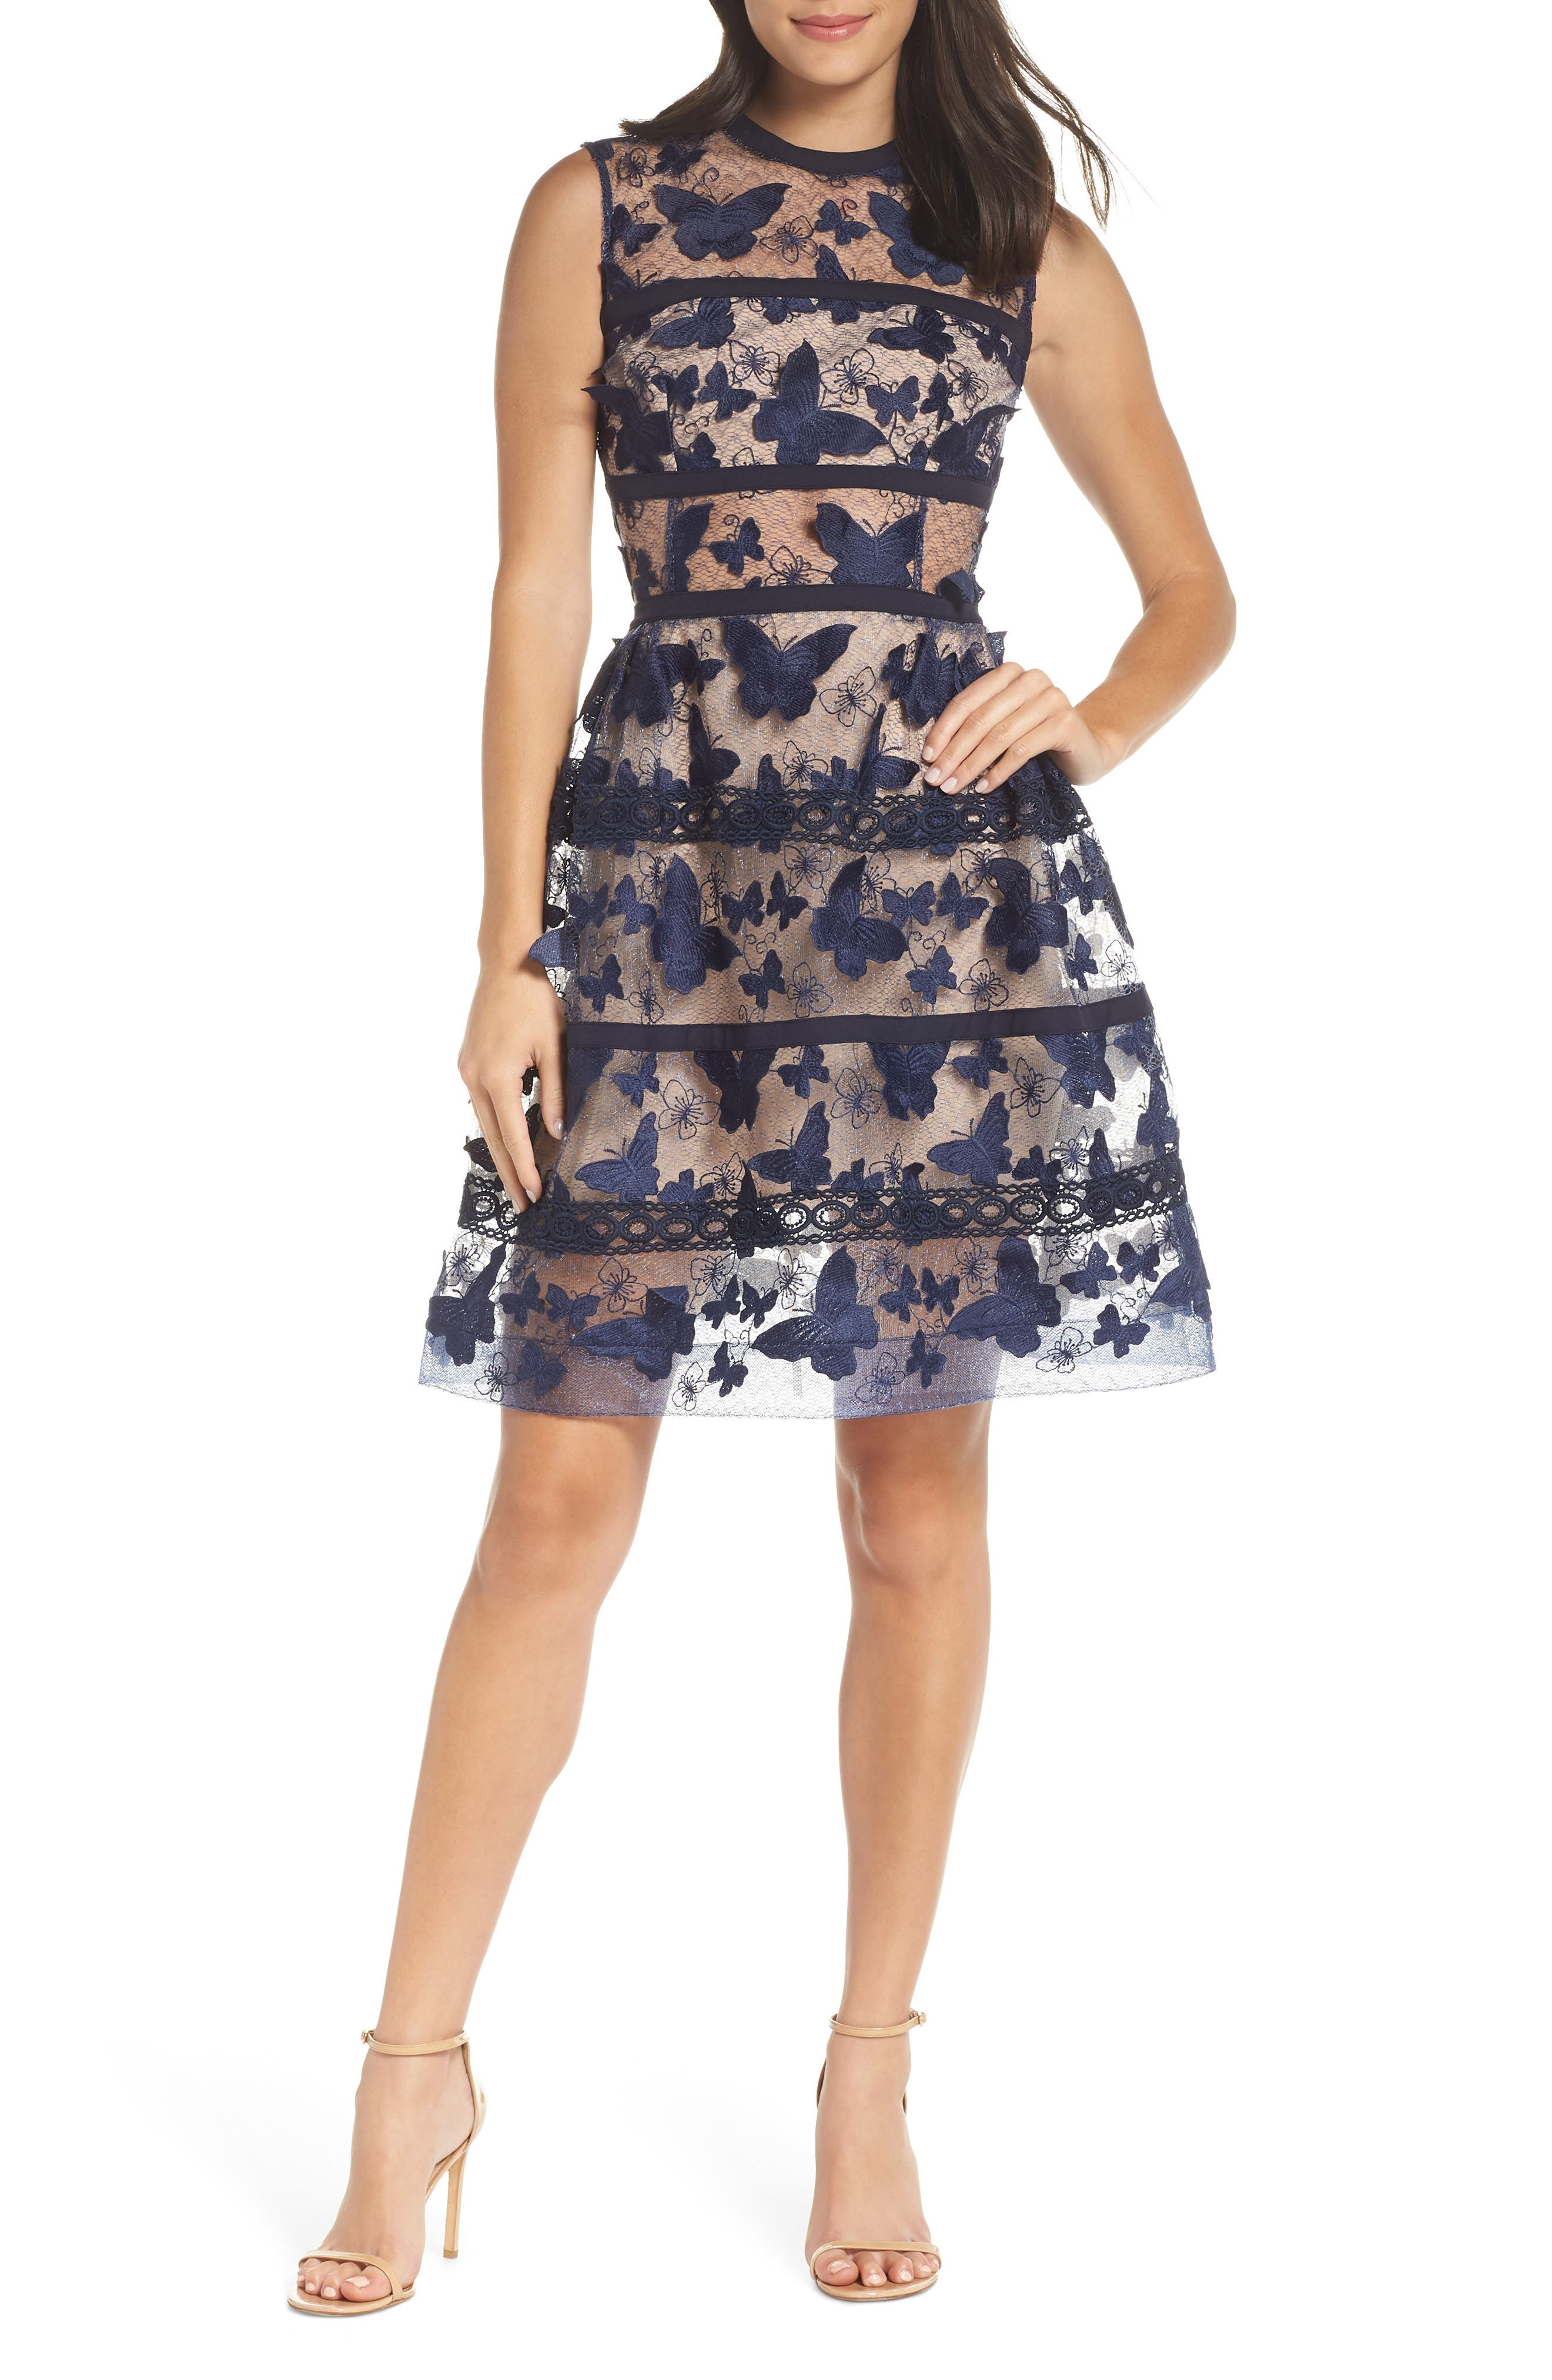 BRONX AND BANCO Valentina Fit & Flare Dress in Navy/ Nude